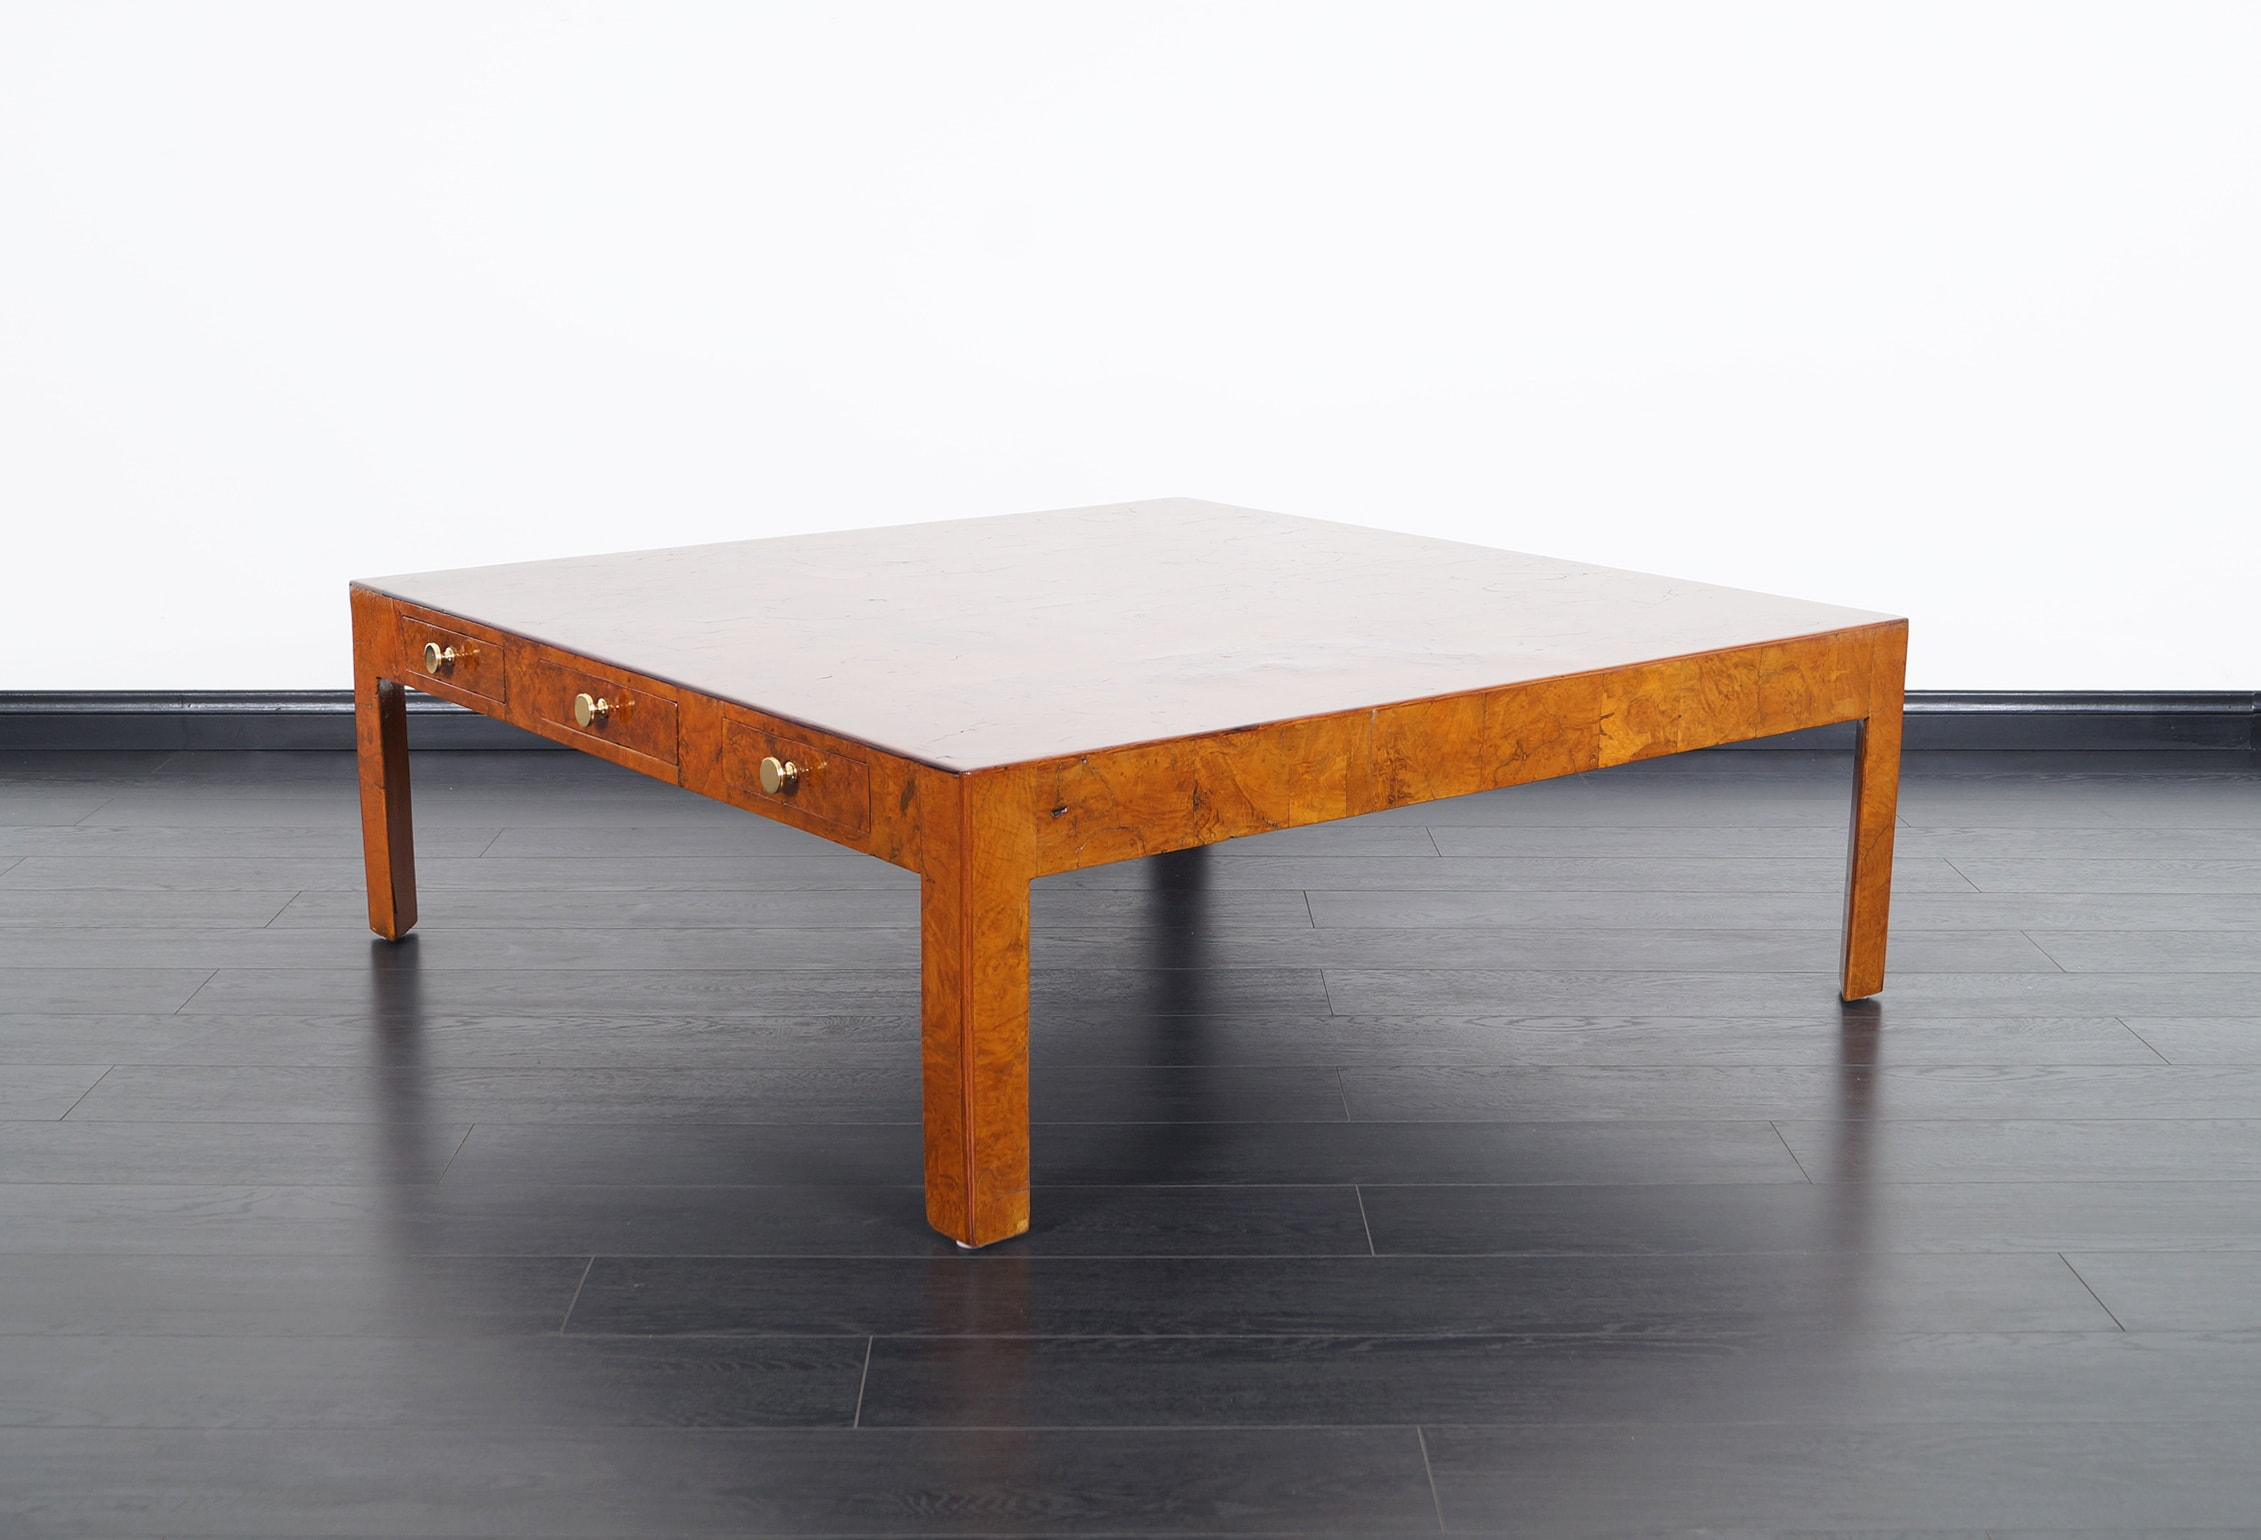 Vintage Italian Burl Wood Coffee Table by Cannell & Chaffin